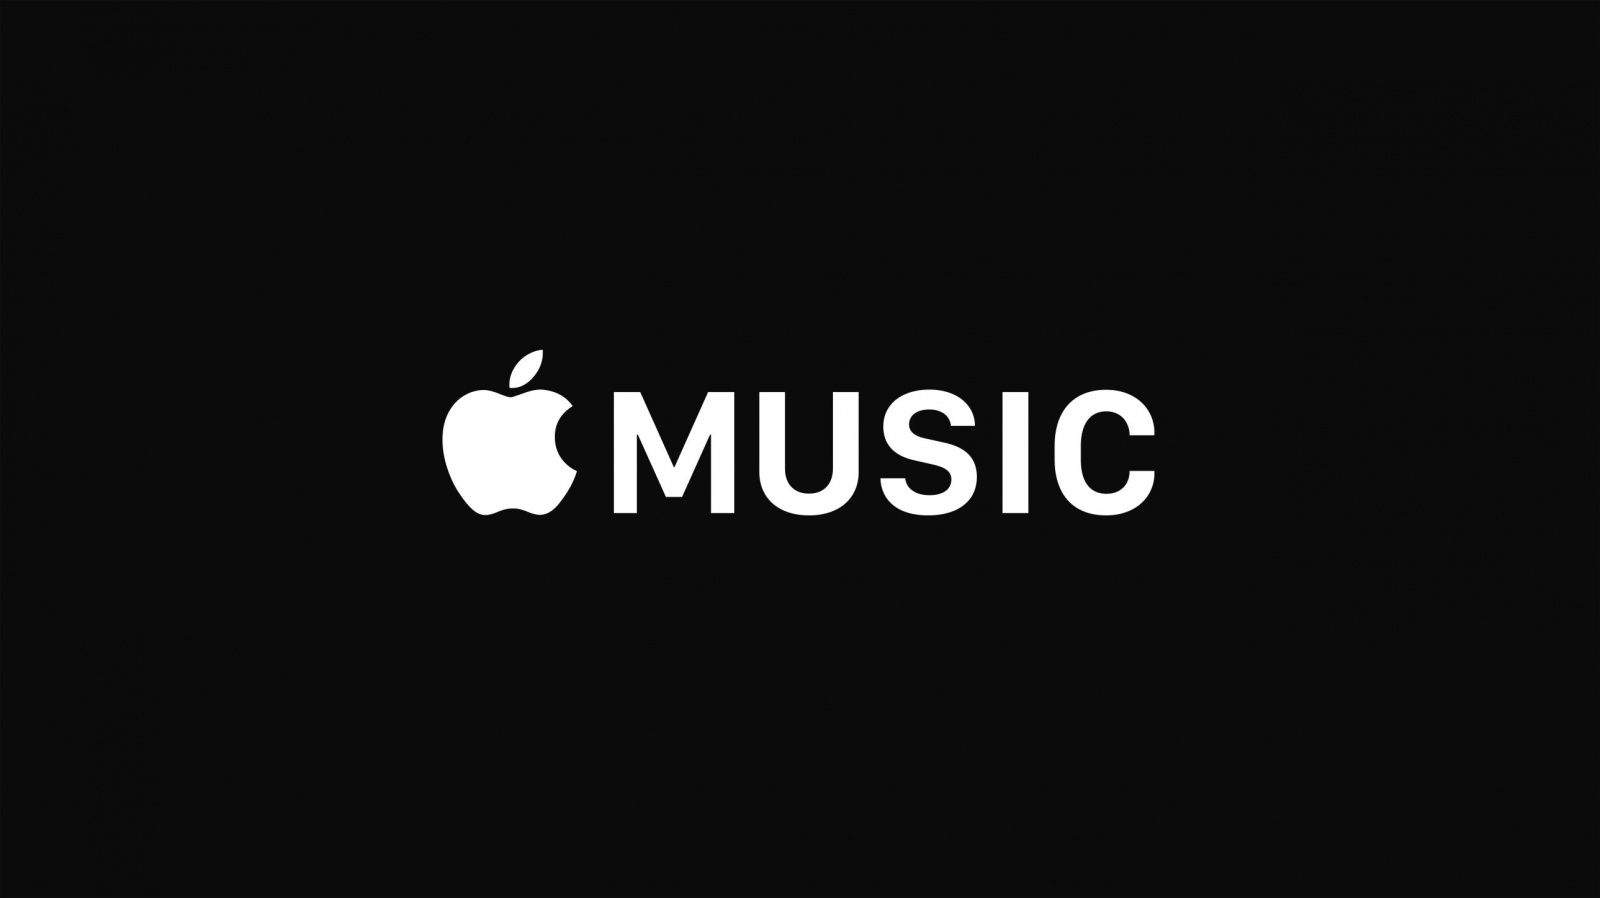 Apple Music is preparing for invasion